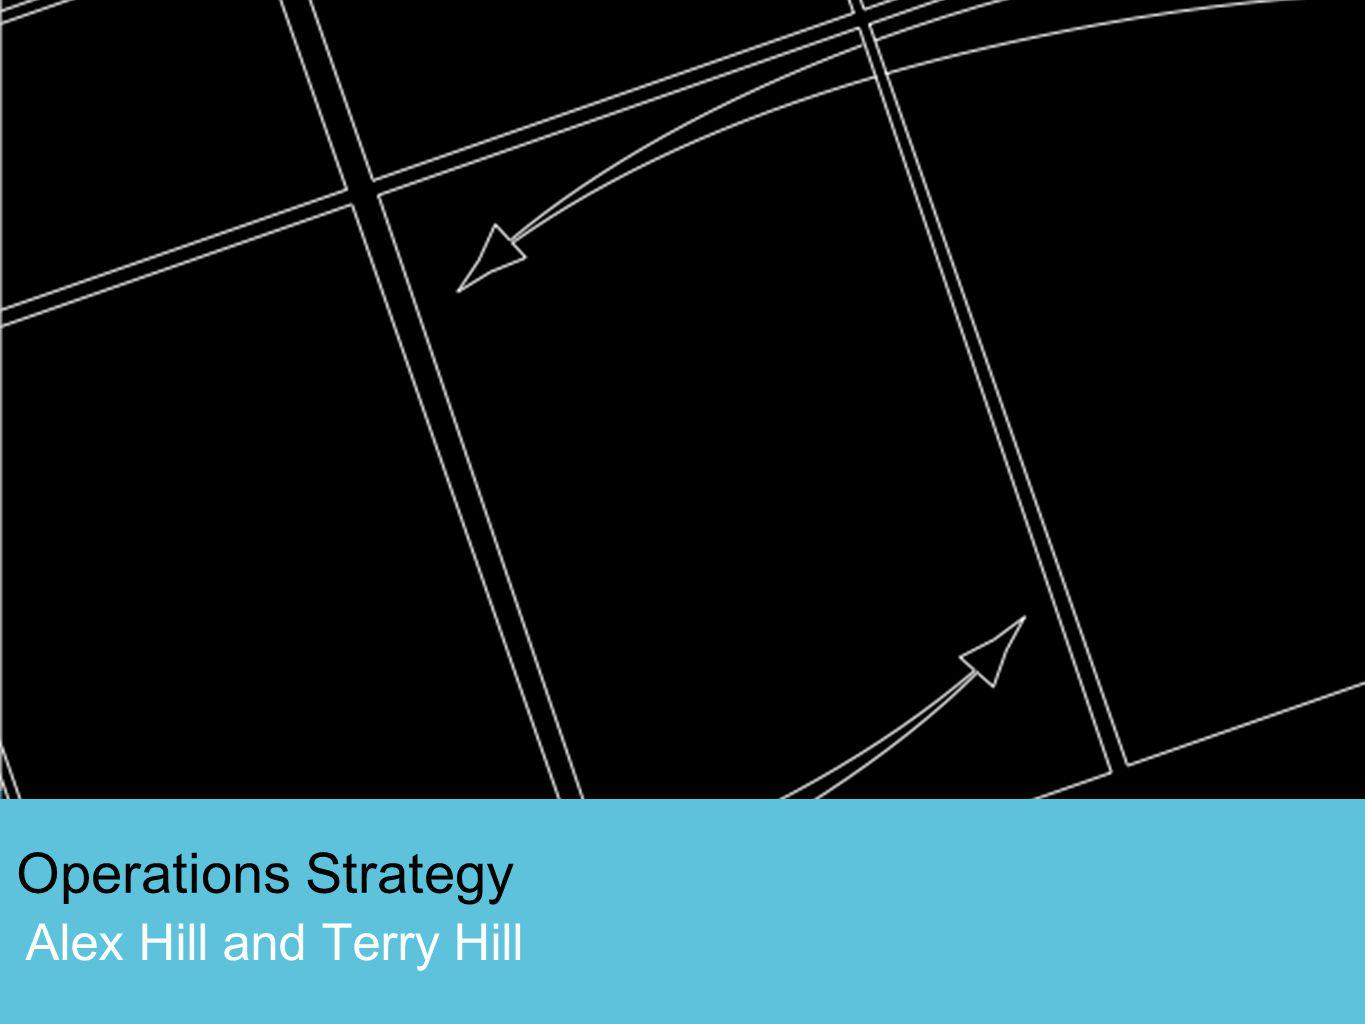 Operations Strategy Alex Hill and Terry Hill